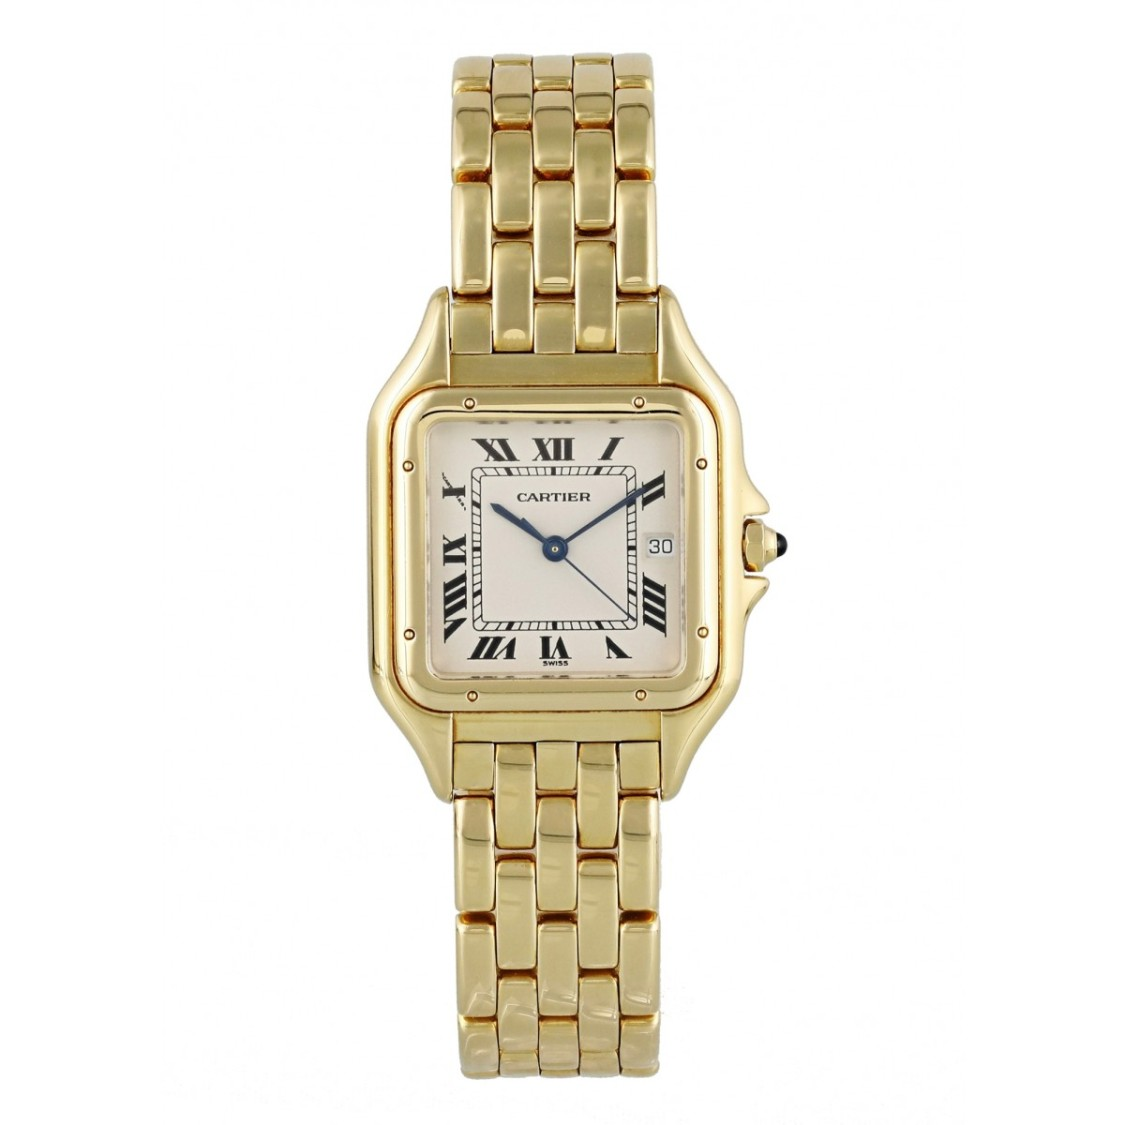 Cartier Pants PANTHERE 1060 18K YELLOW GOLD LARGE WATCH